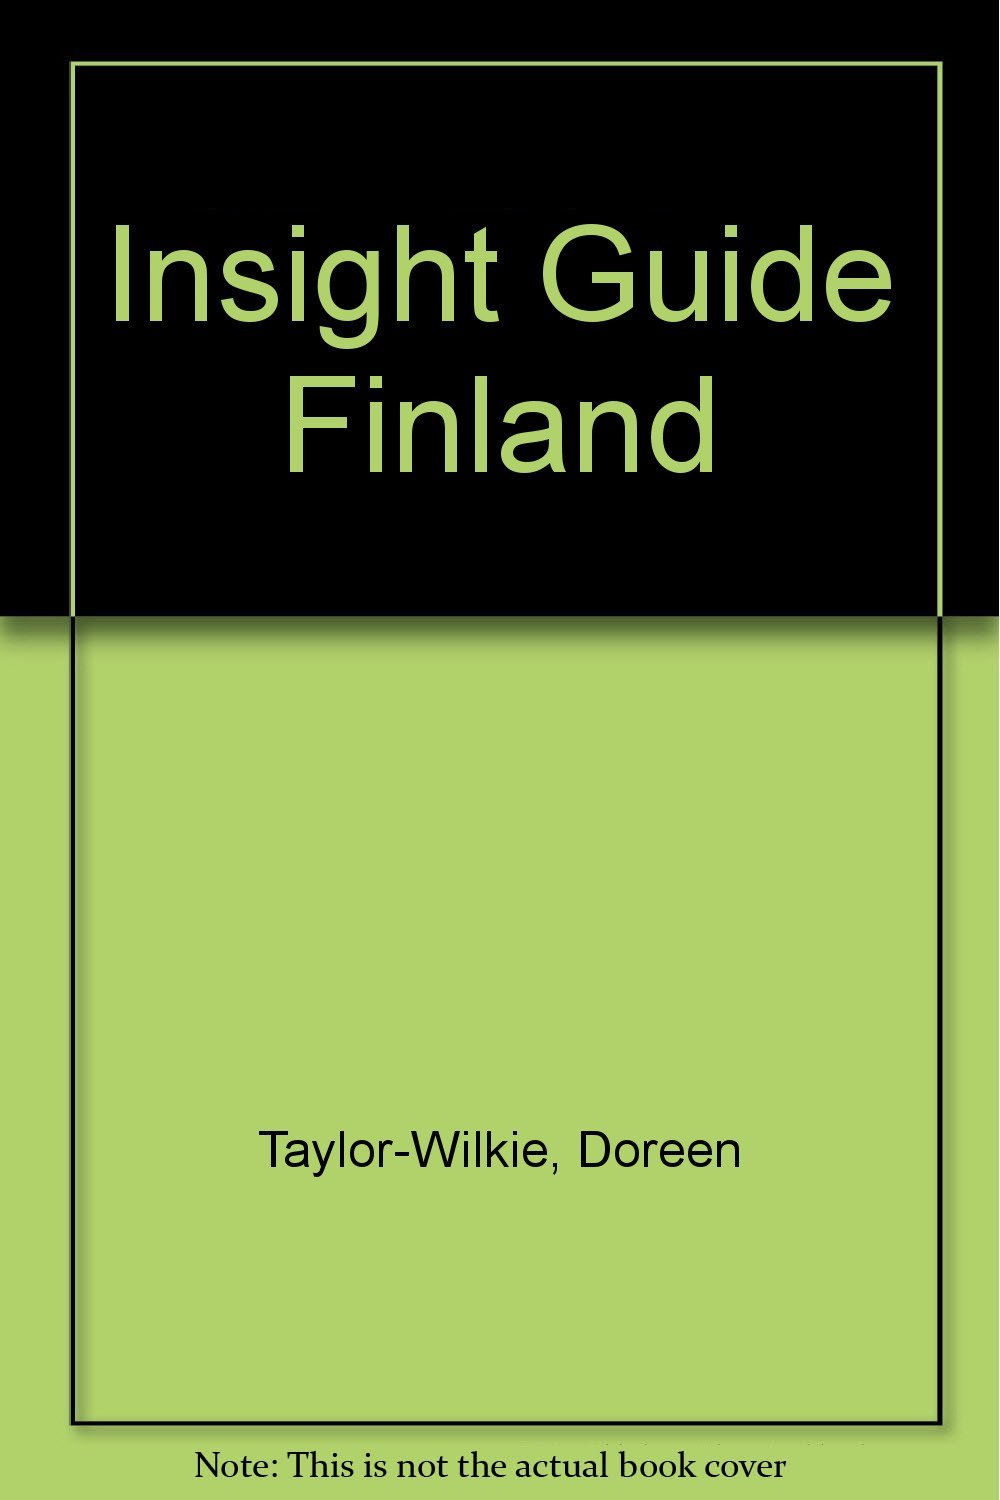 Insight Guide Finland [Dec 01, 1992] Taylor-Wilkie, Doreen and Insight Guides